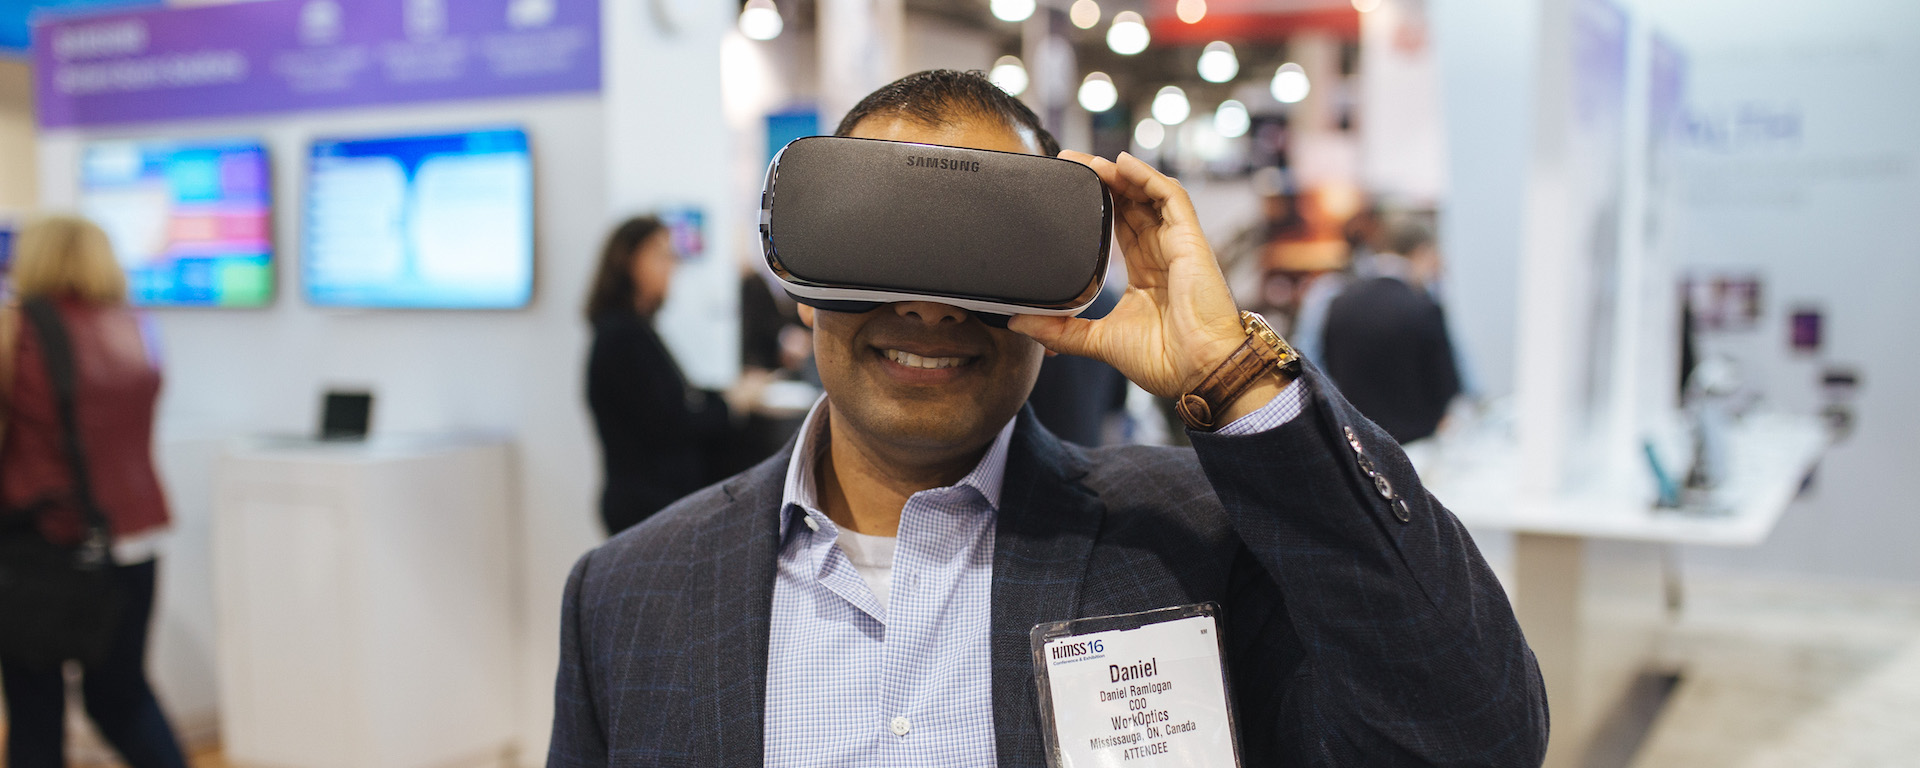 Samsung Gear VR at HIMSS